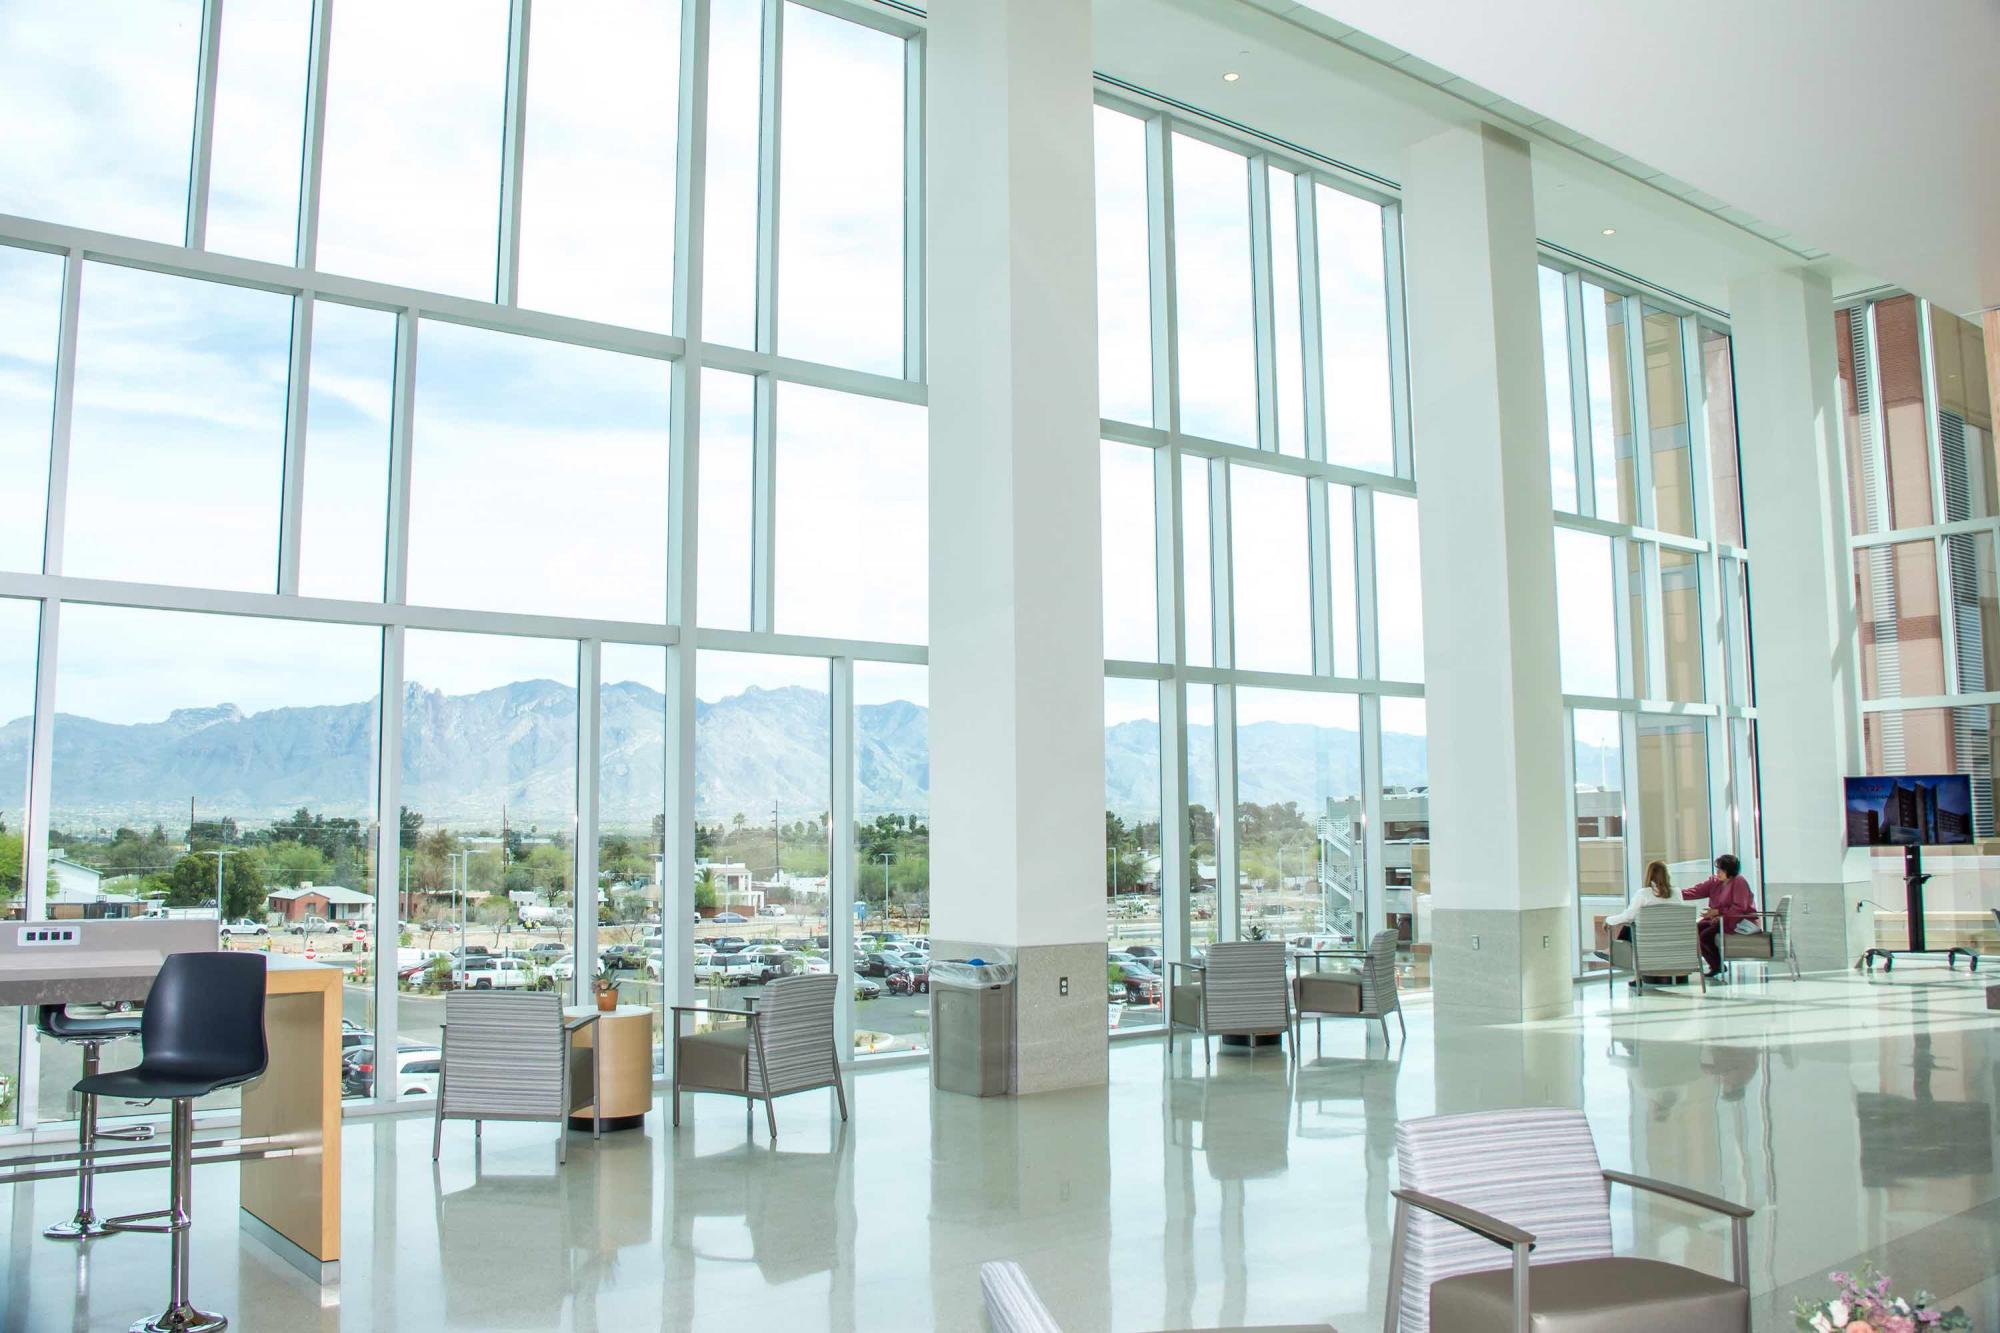 The view of the Santa Catalina Mountains from the second-floor cafe.